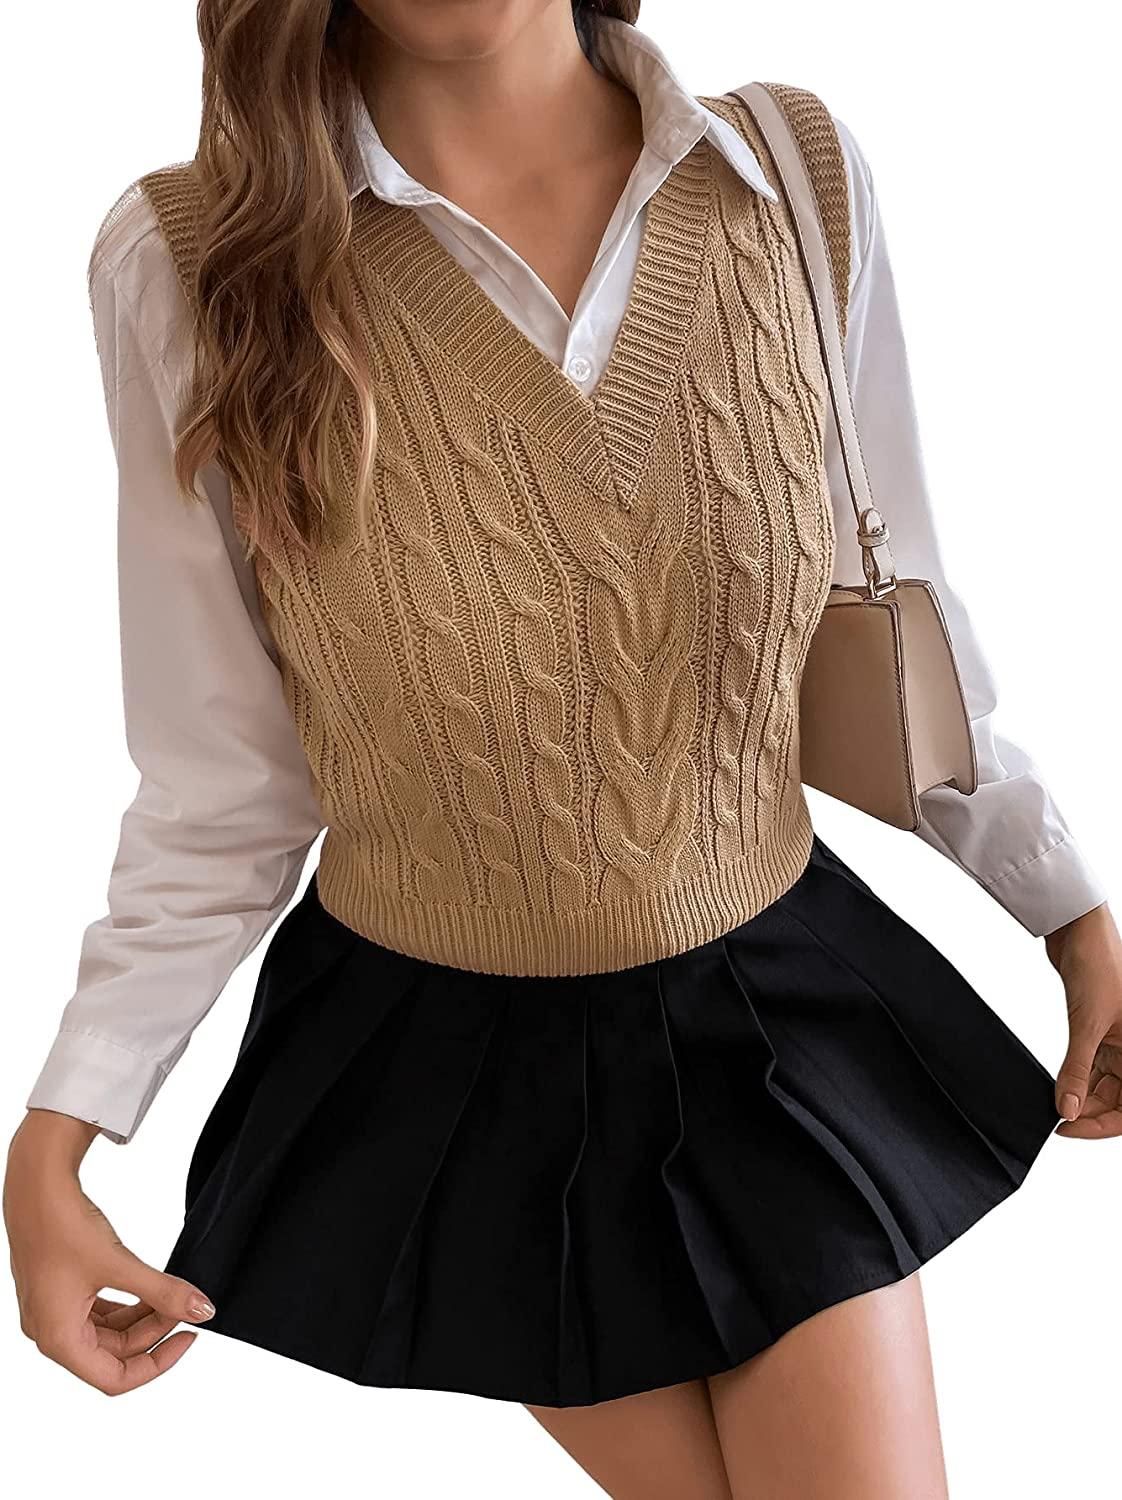 SweatyRocks Women's Solid Cable Knit Sweater Vest Without Blouse